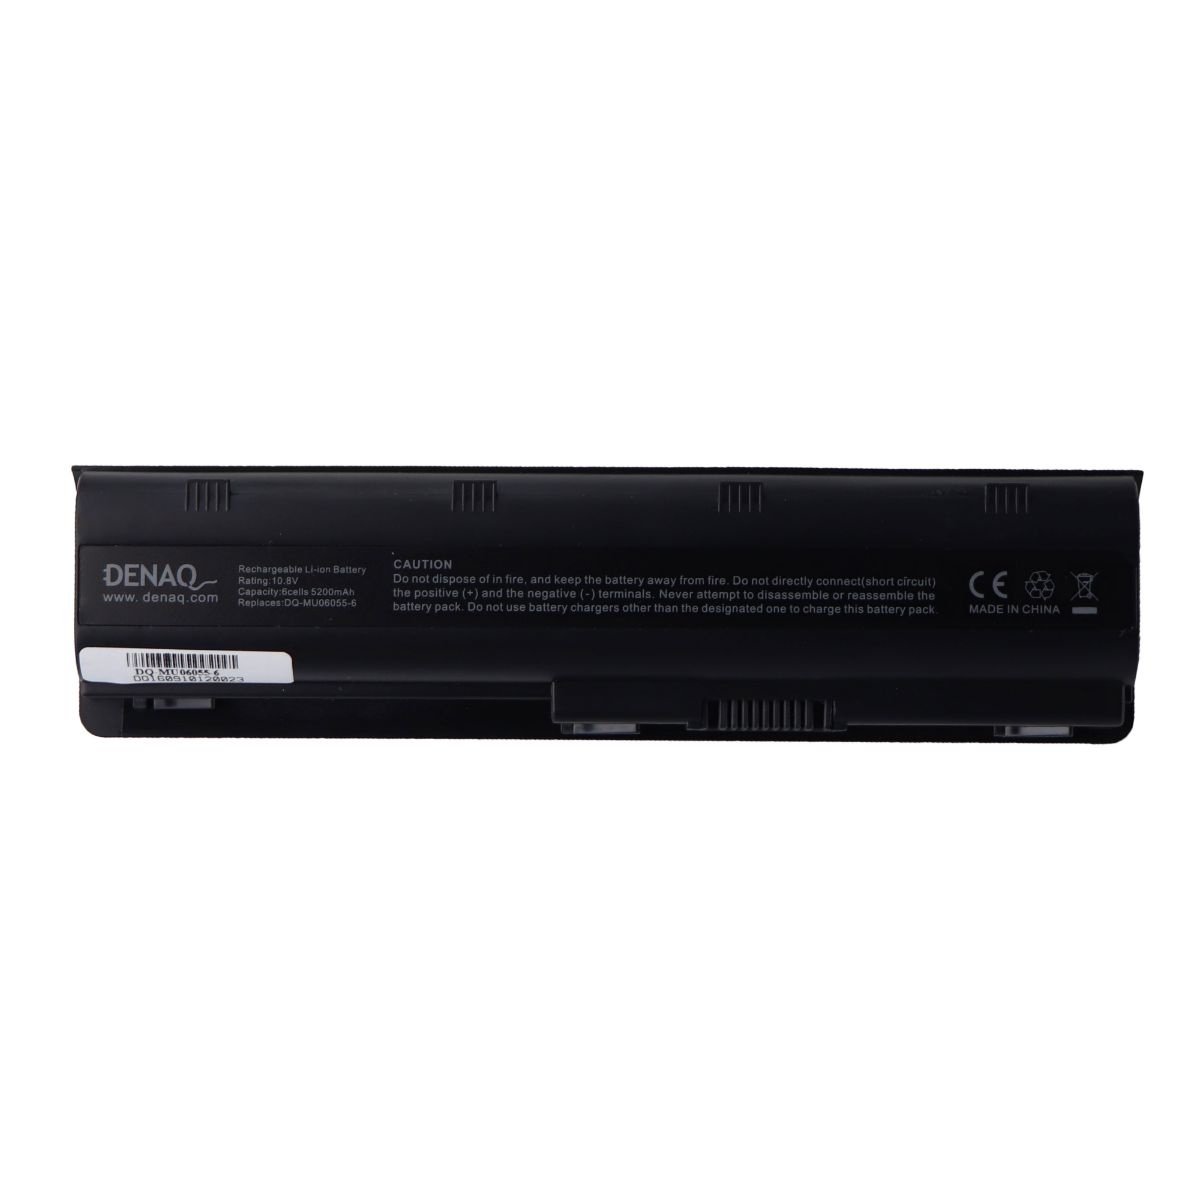 Denaq 6 Cell Li-Ion Replacement Battery for HP Envy 17 Notebook (DQ-MU06055)